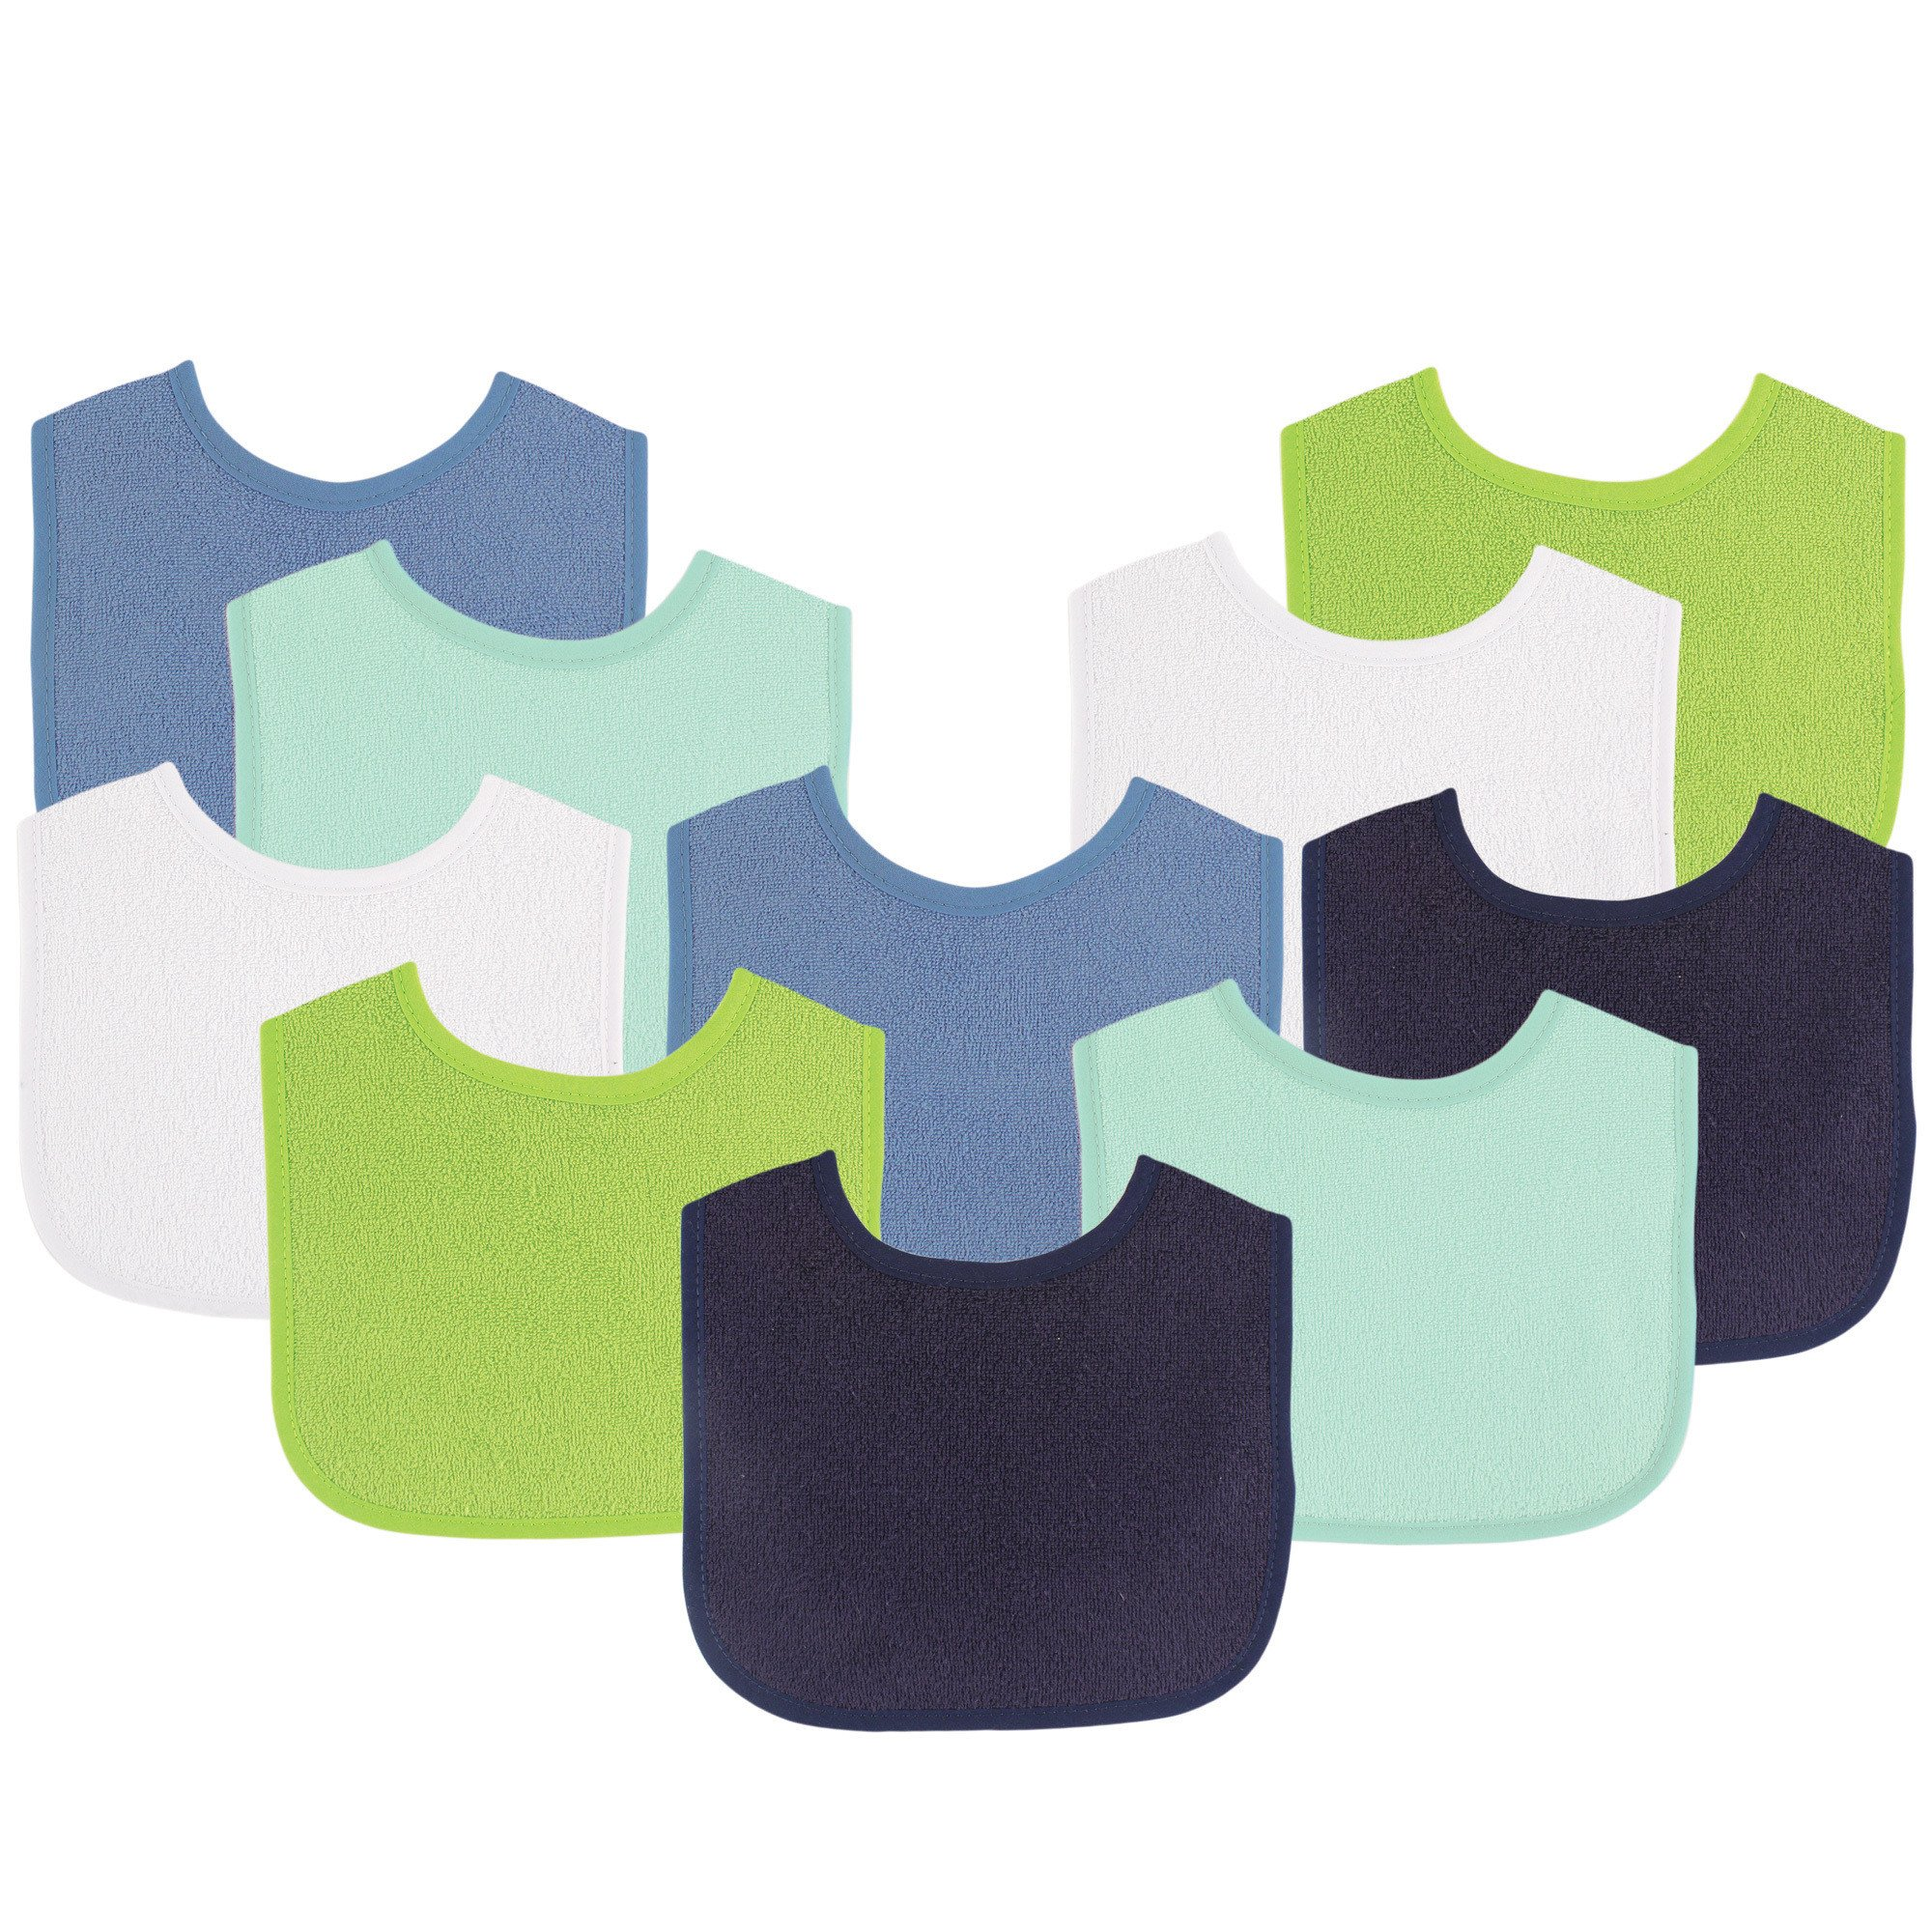 Luvable Friends Baby Bibs Value Pack, Navy/Lime, 6 x 7.5, 10 Count (Colors May Vary)